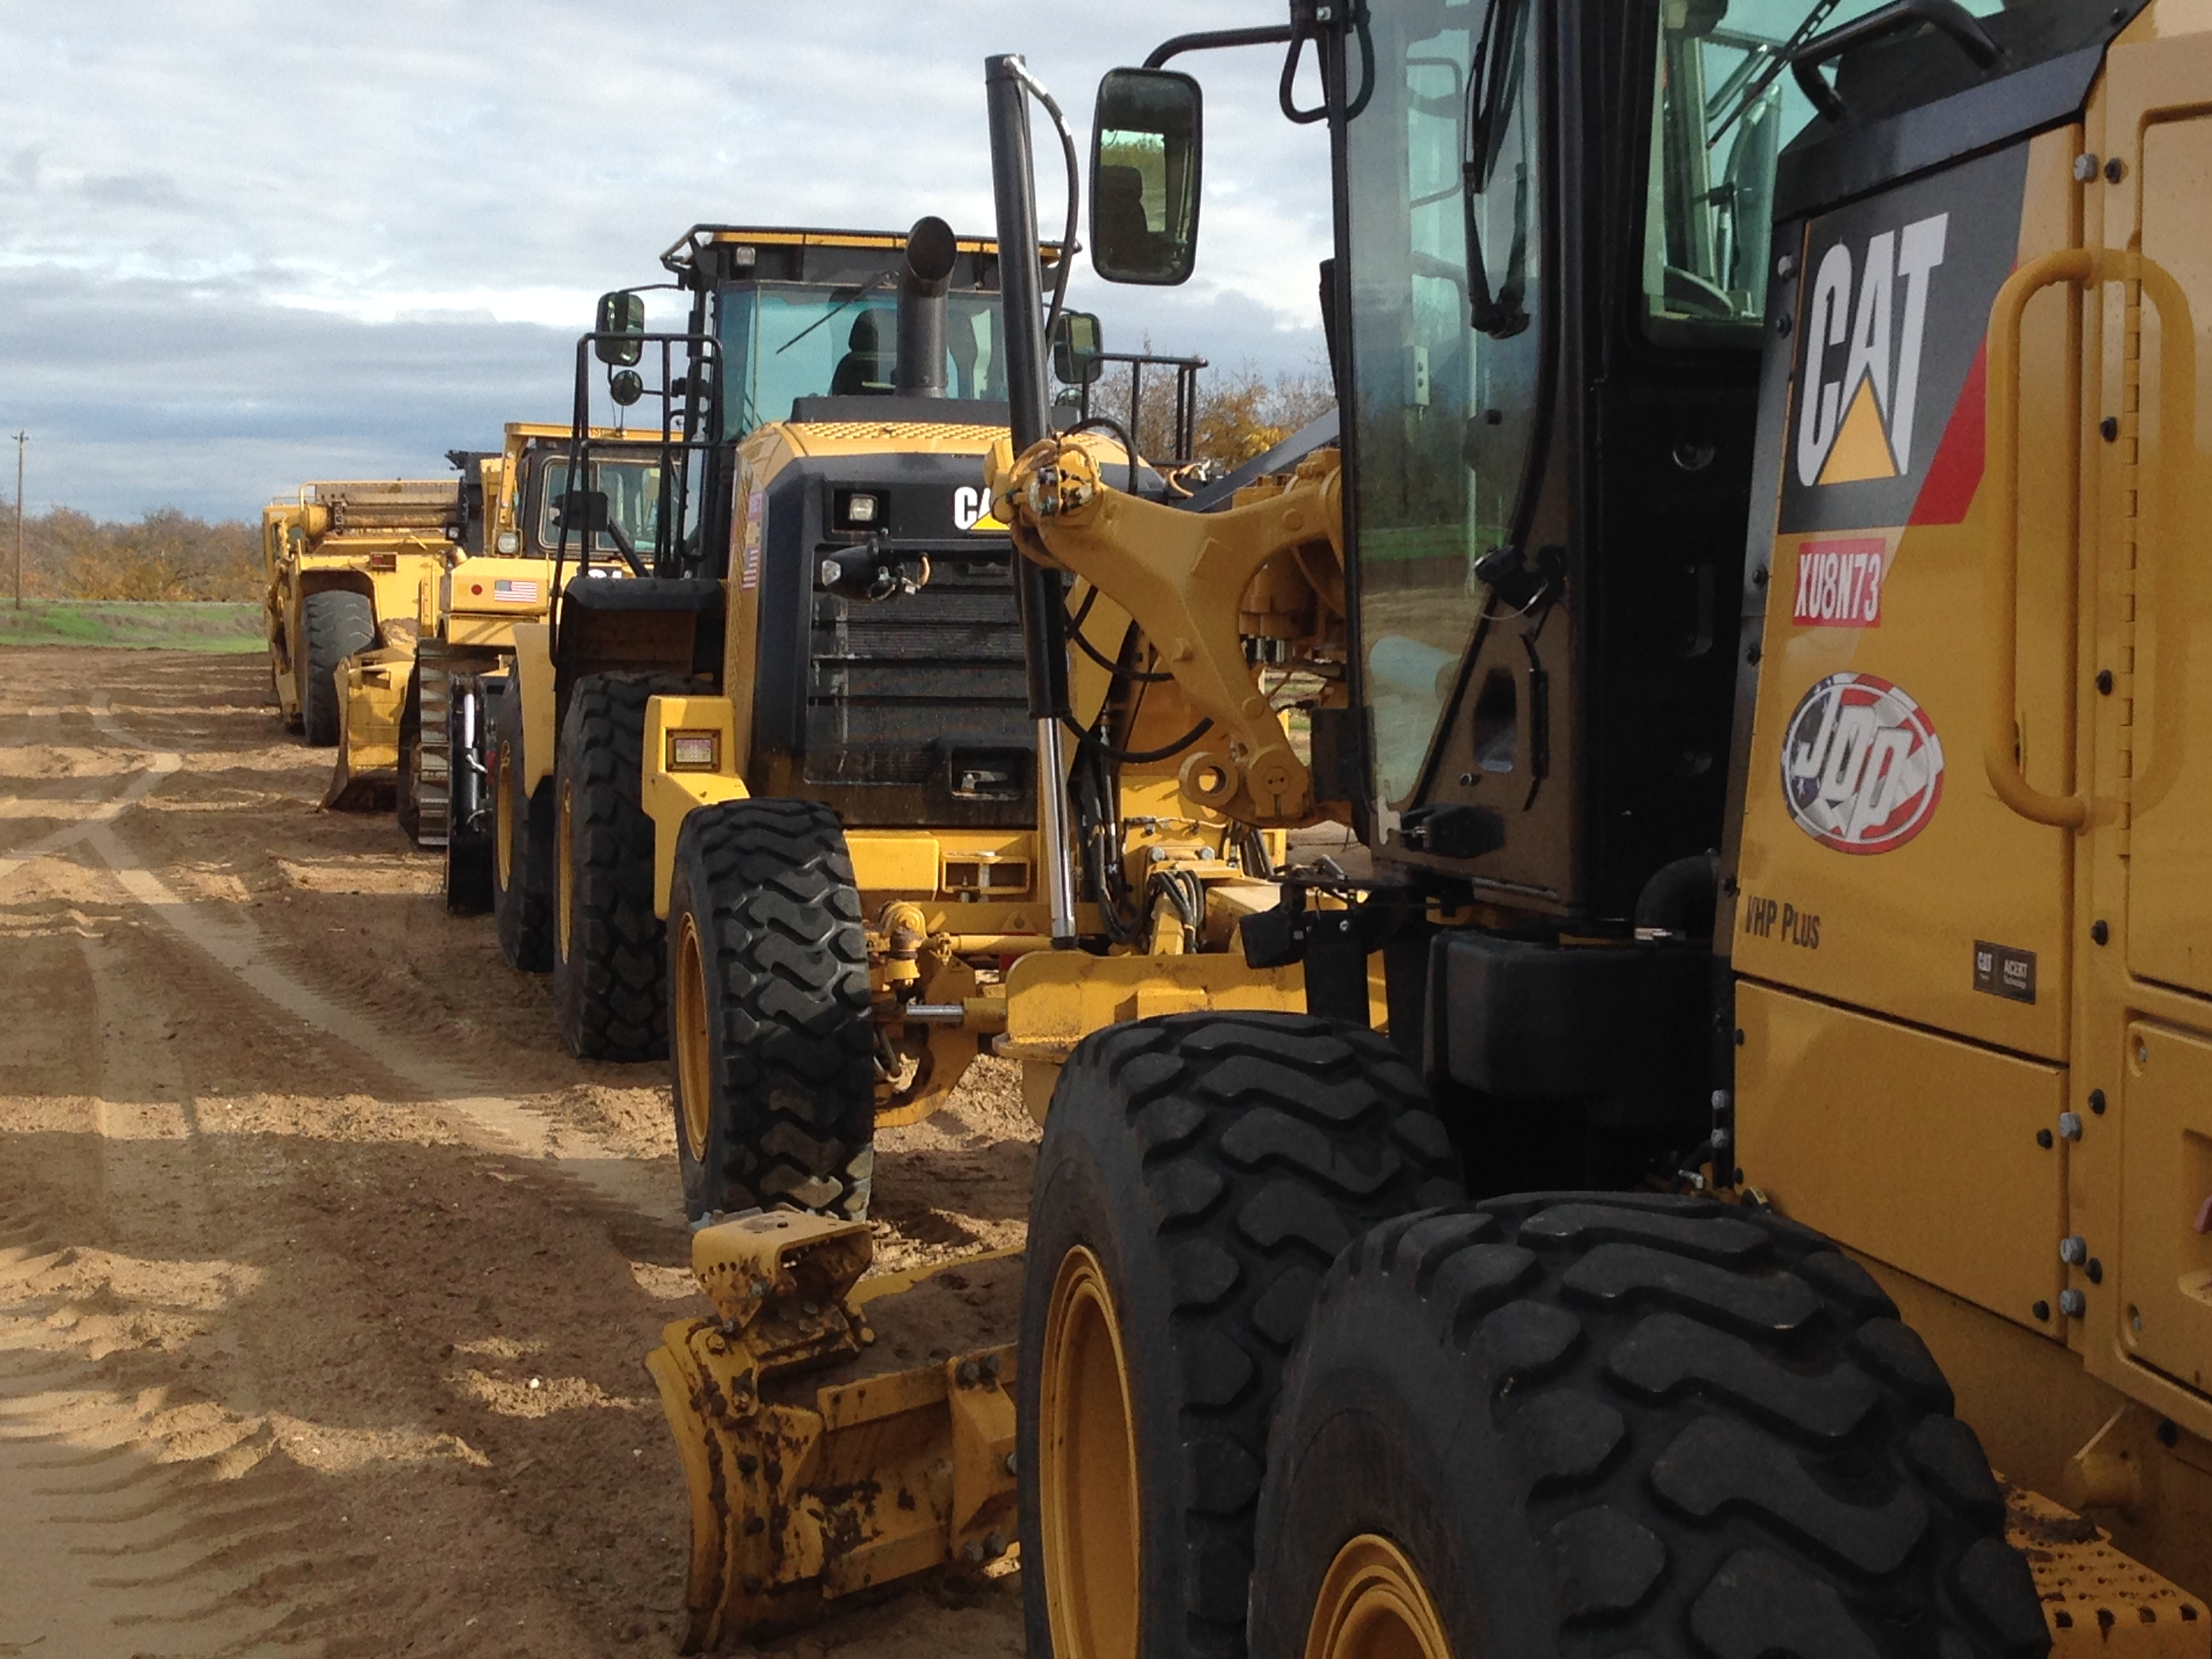 Lined up and Ready for work